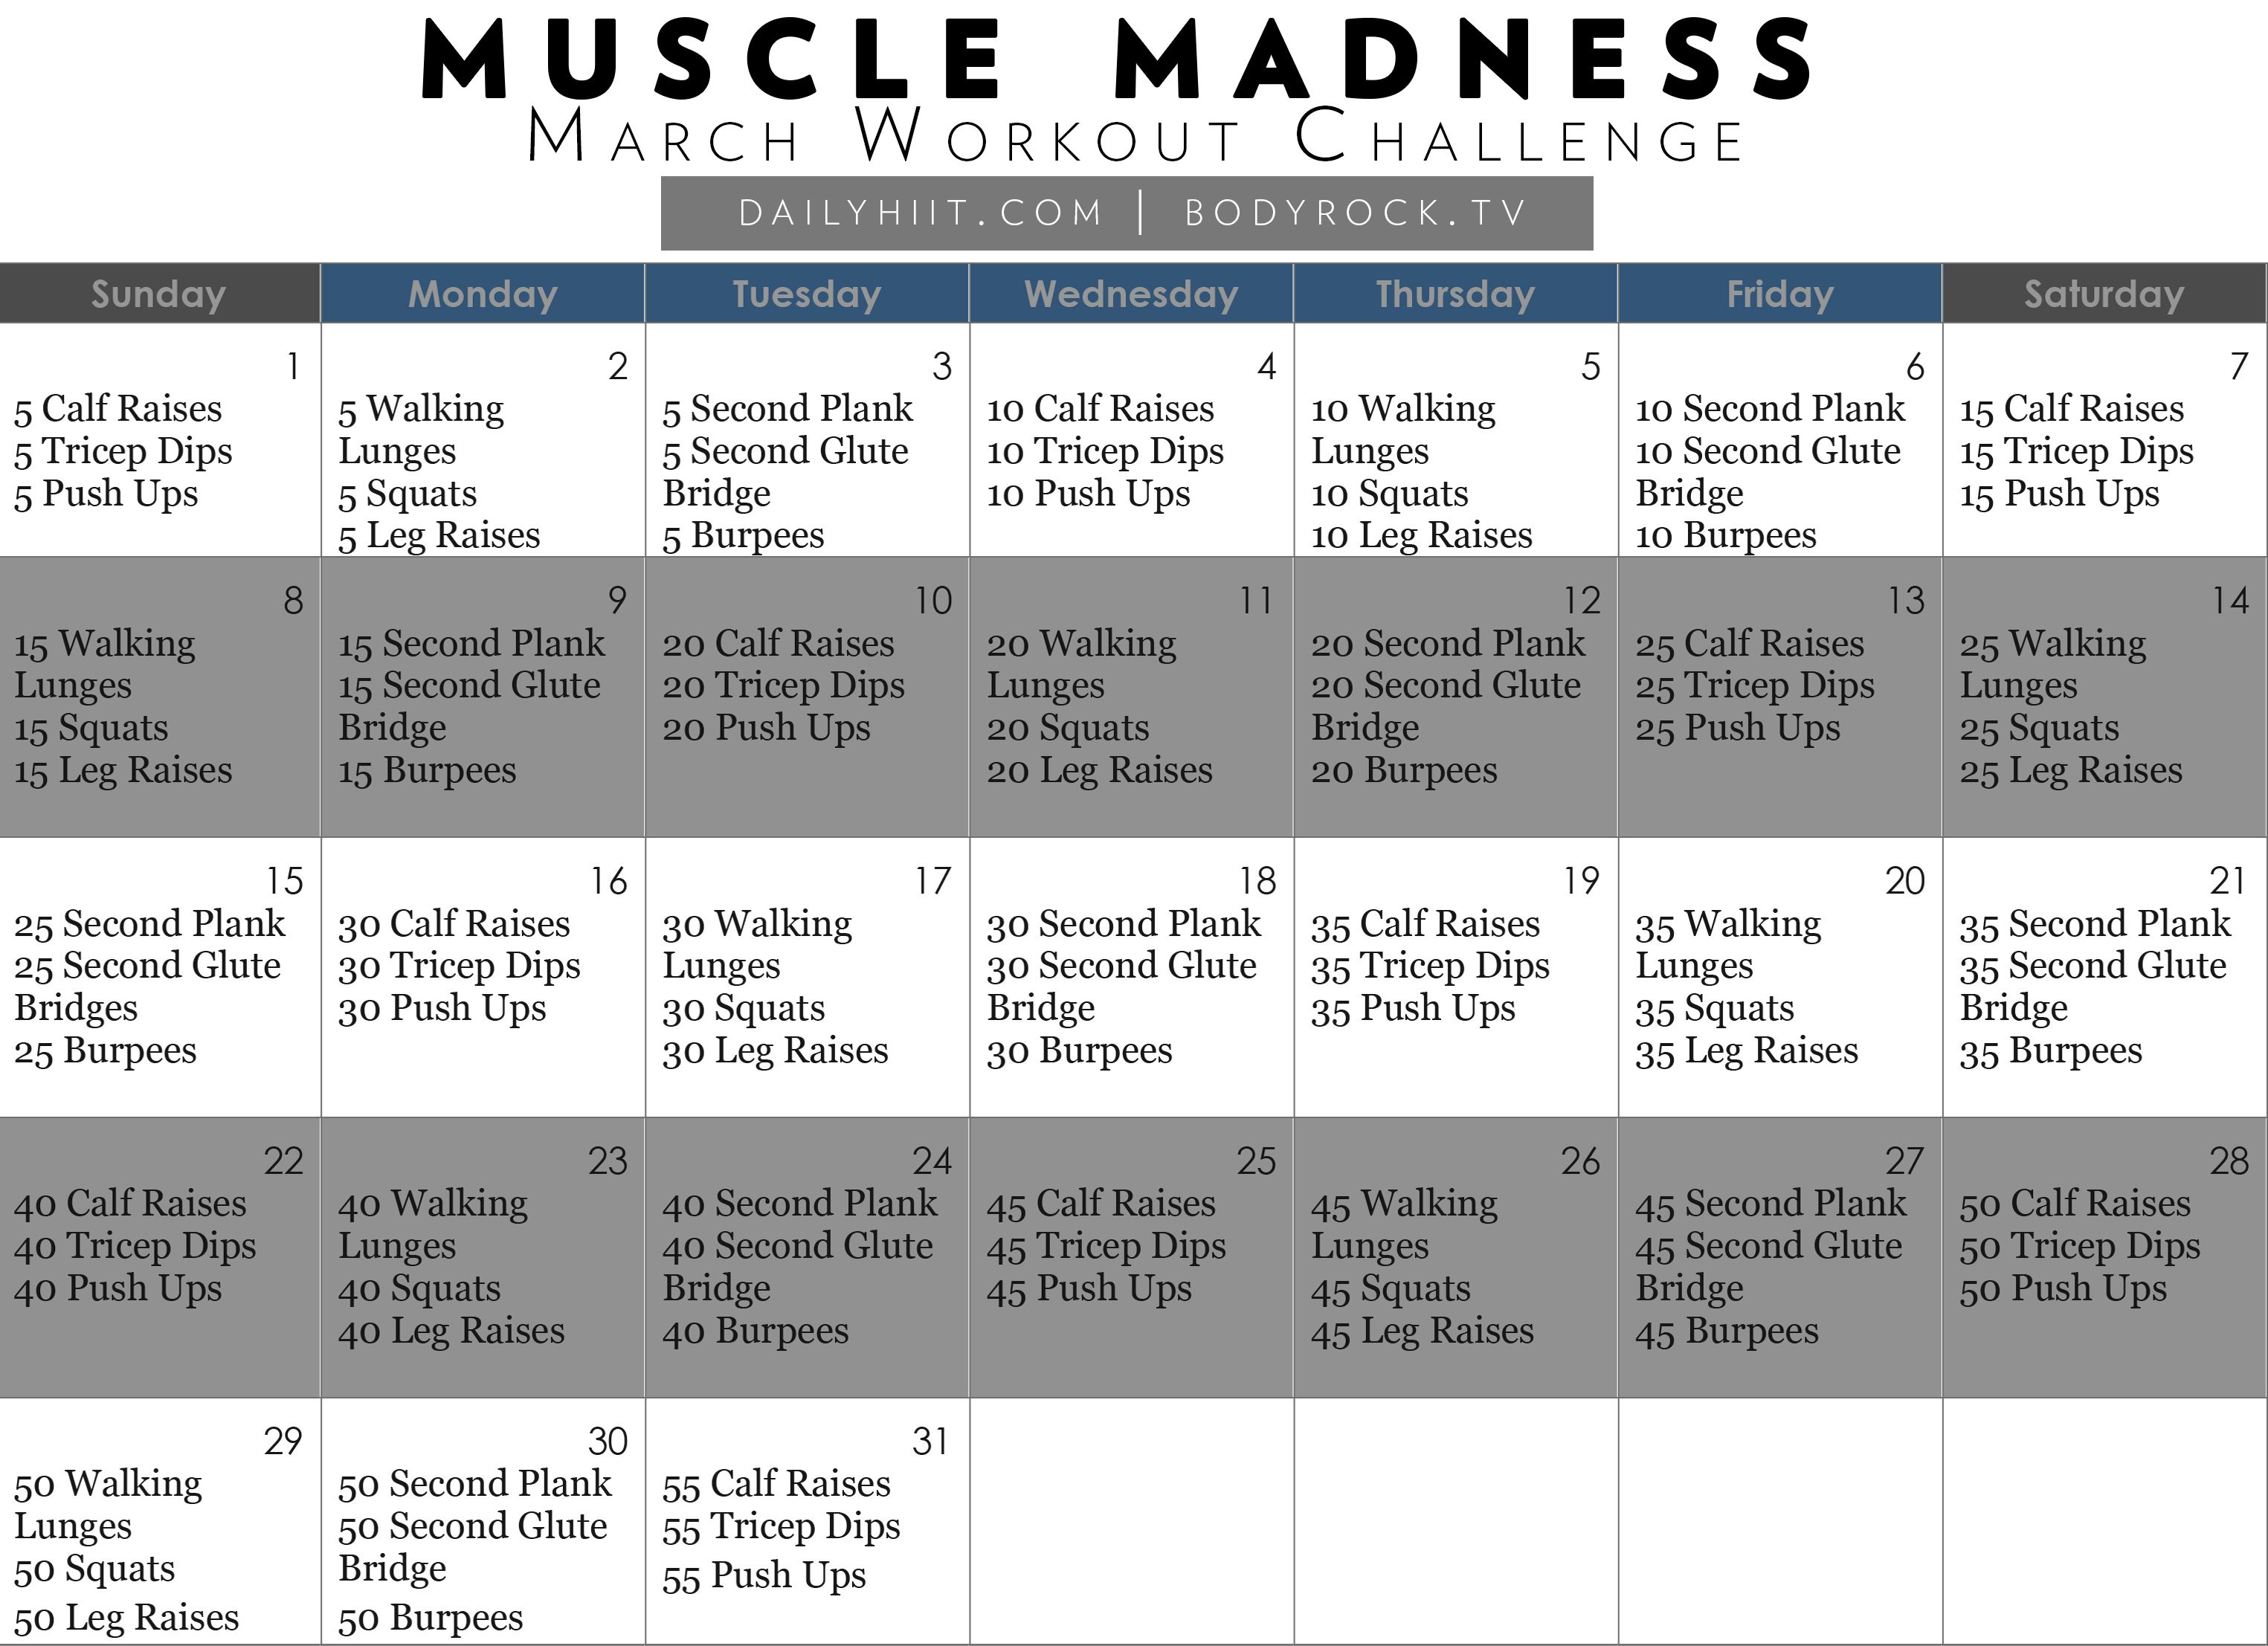 Muscle Madness March Workout Challenge (FREE CALENDAR